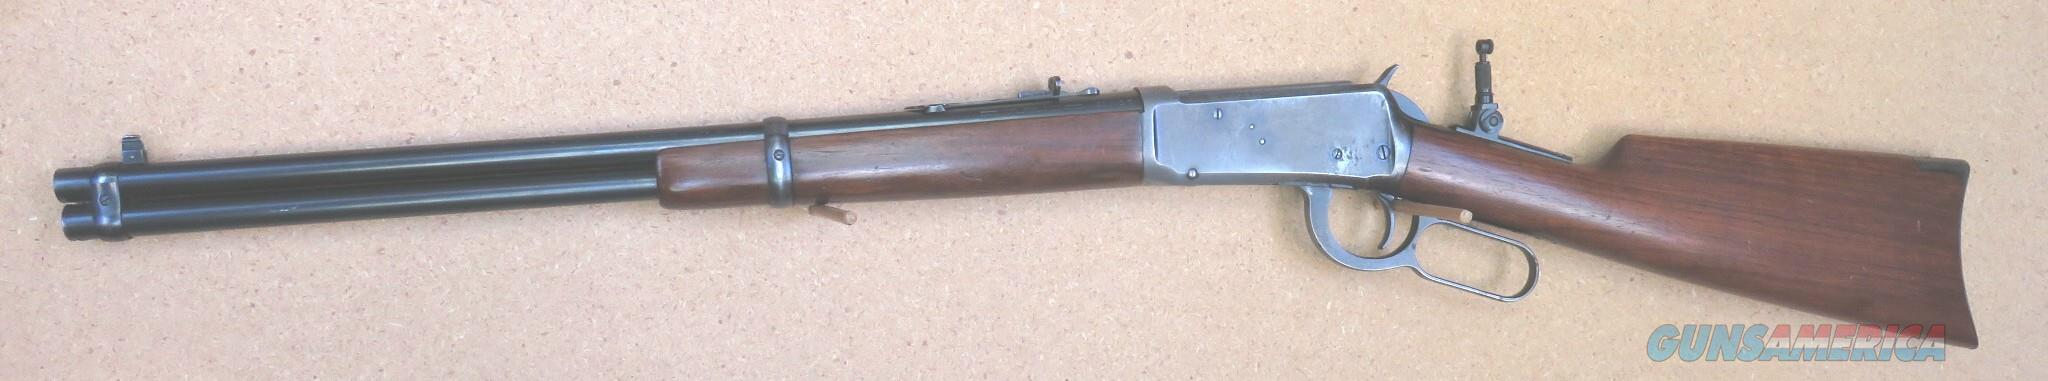 Winchester 1894 Carfle  or Ri-fine Special orderCARBINE   Guns > Rifles > Winchester Rifles - Modern Lever > Model 94 > Pre-64